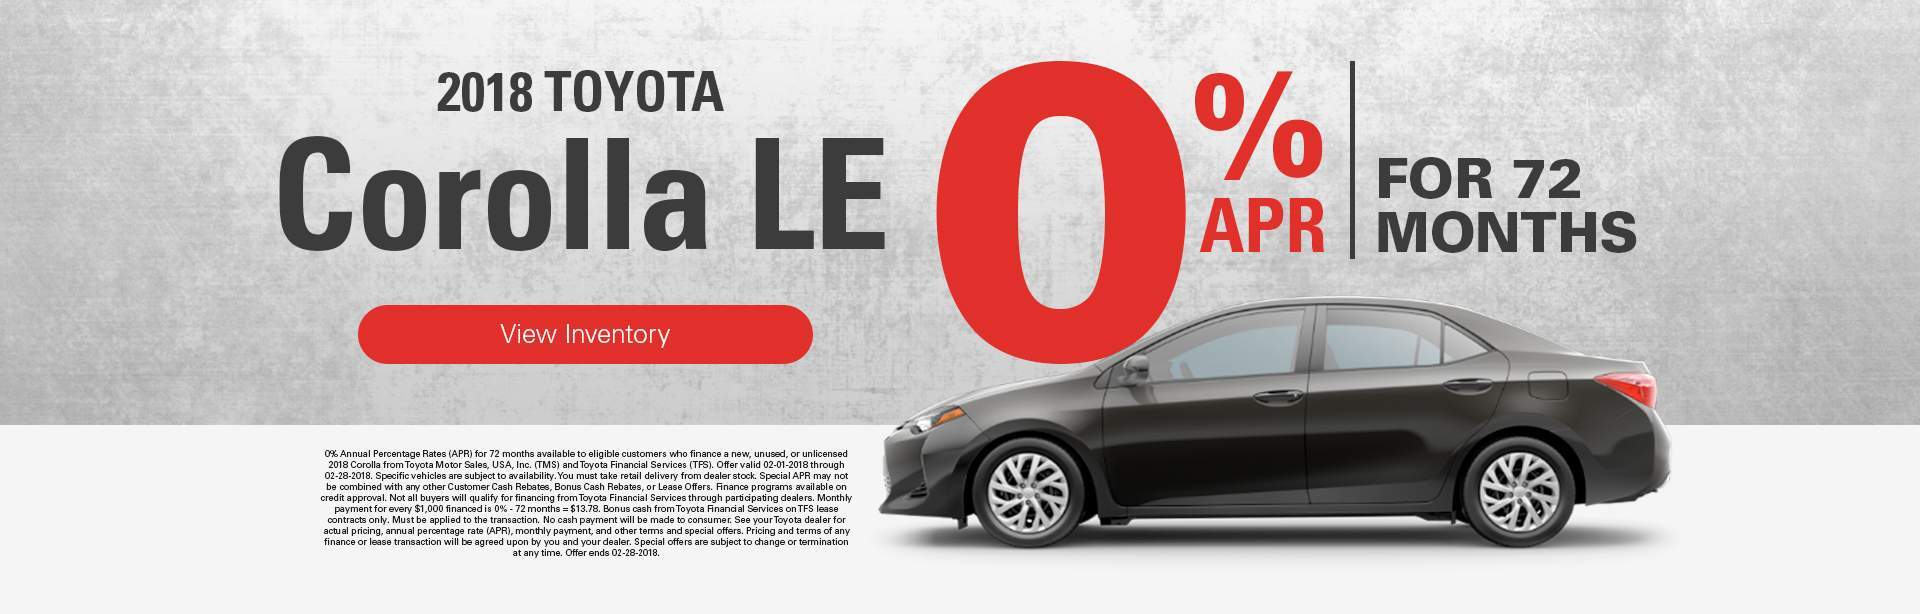 2018 Corolla LE 0% APR for 72 months